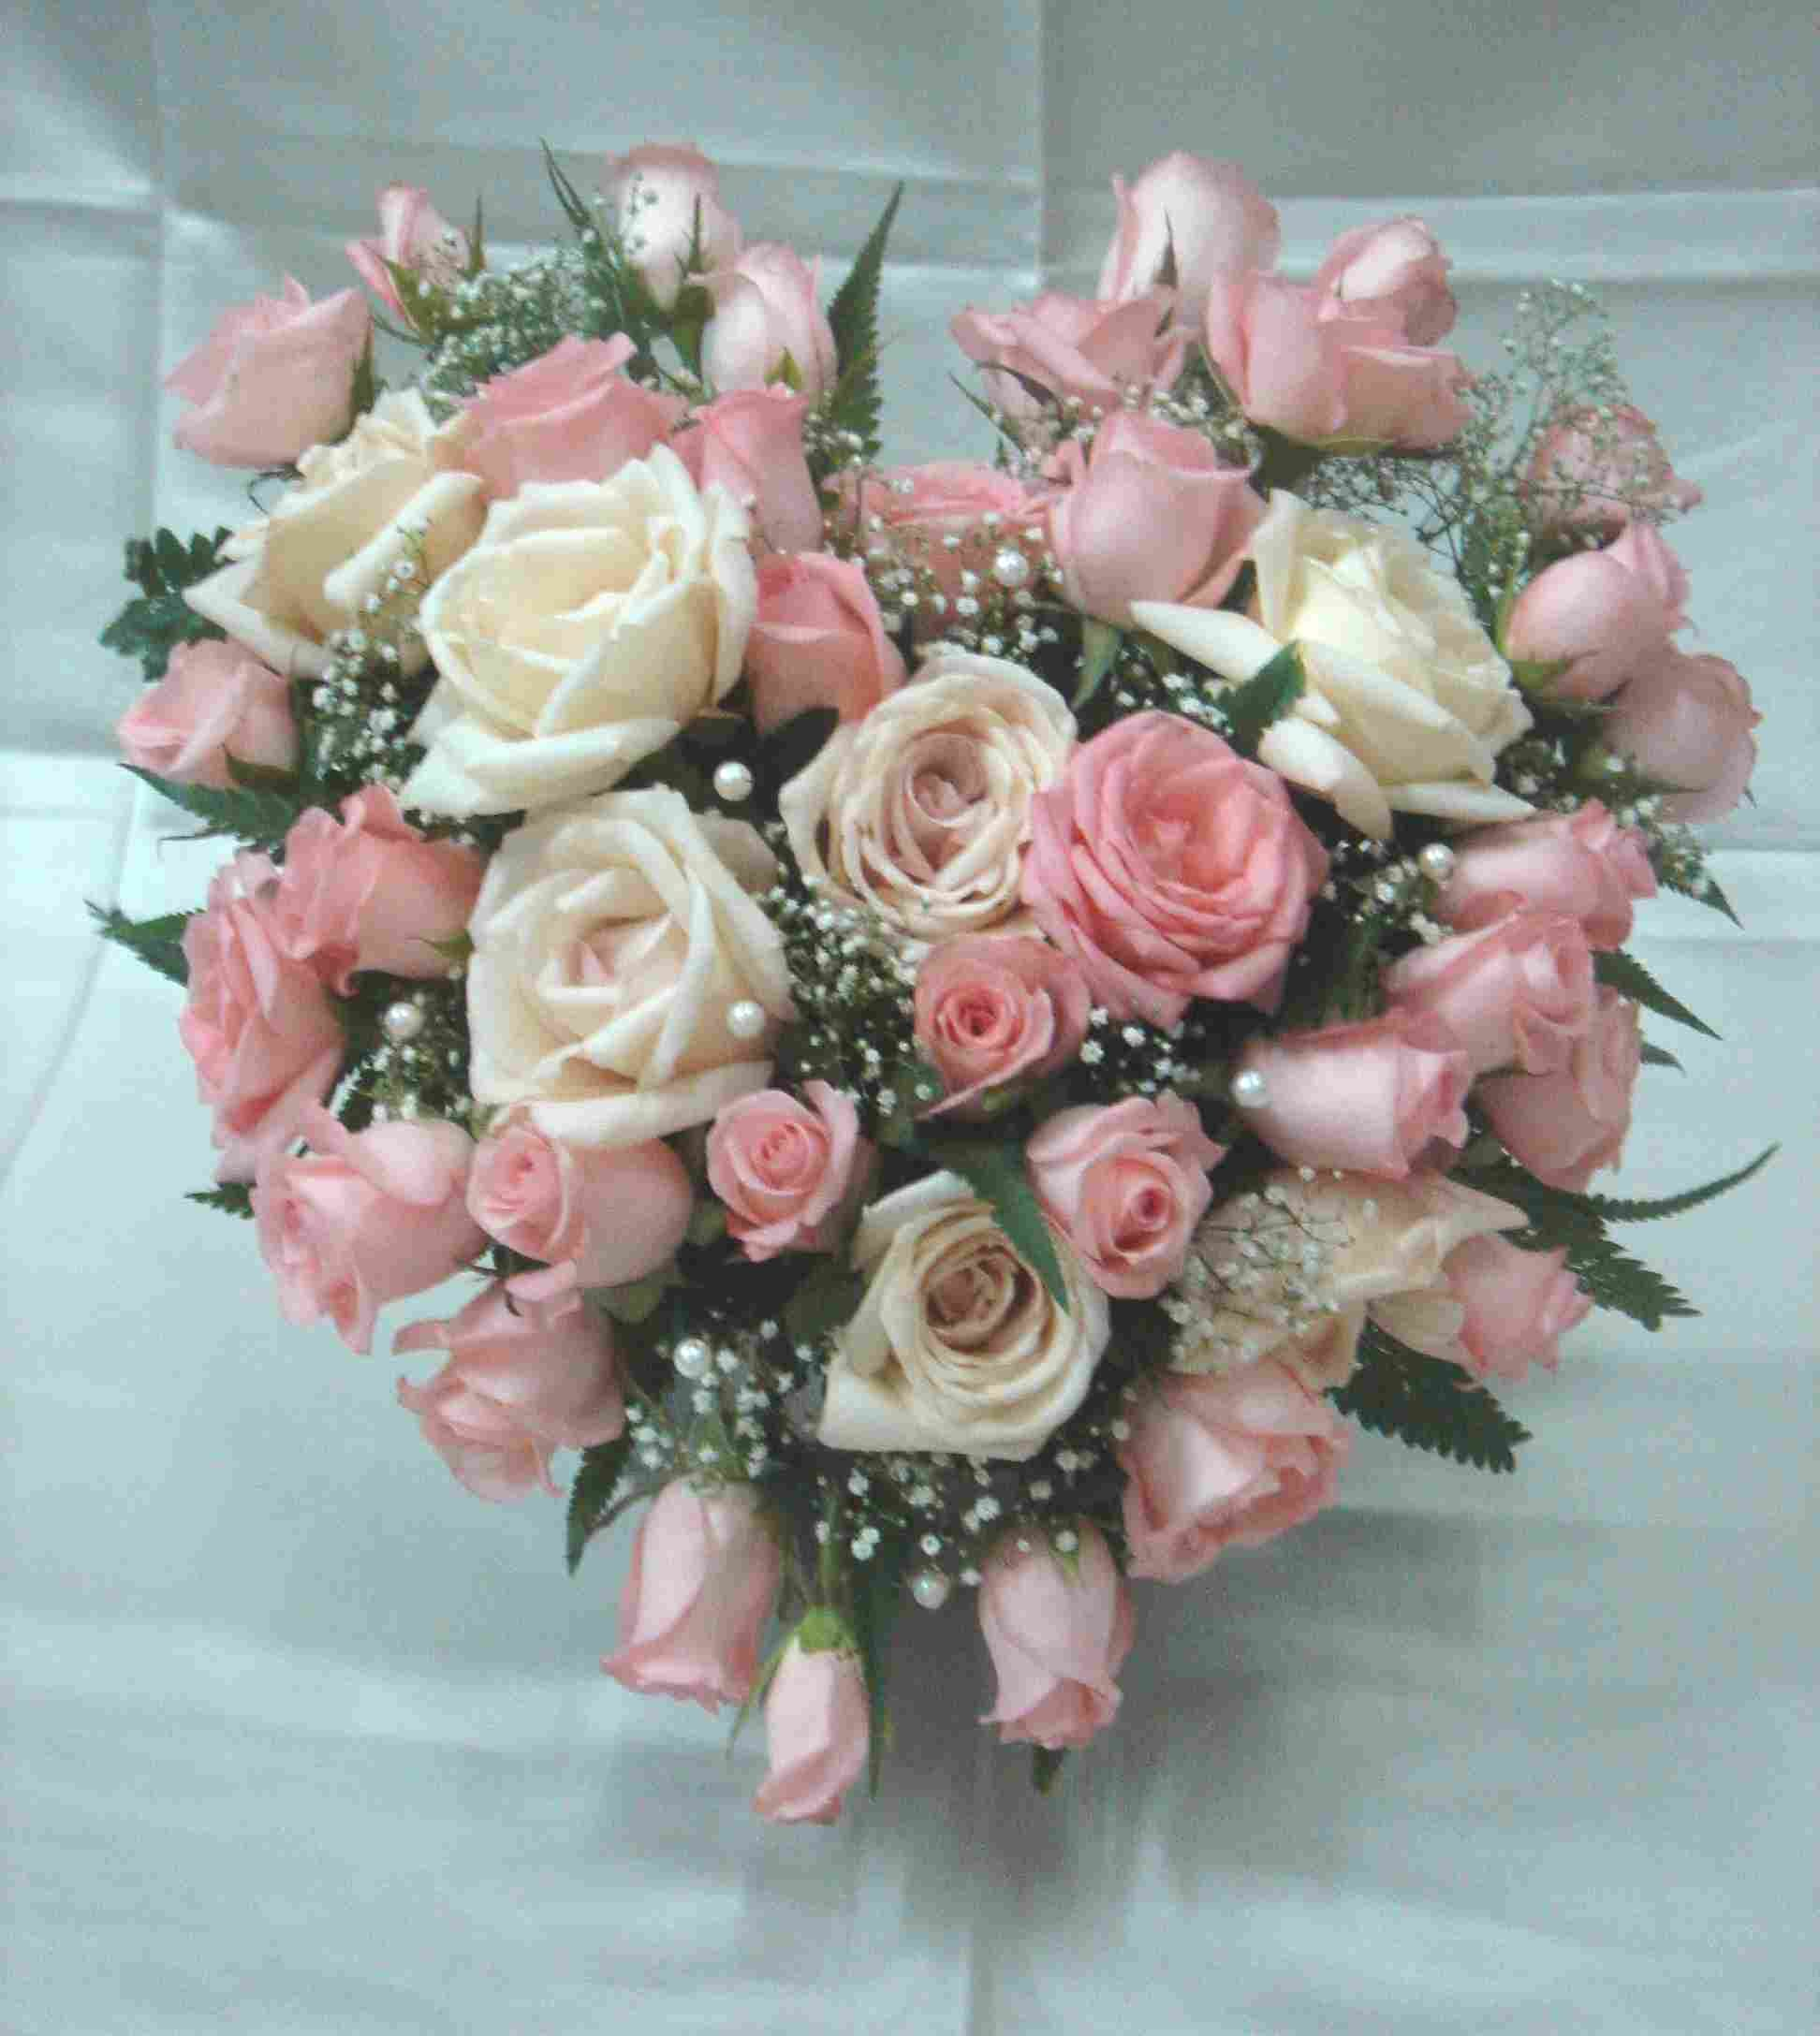 Flower arrangements now you can send this romantic valentines day celebrate valentines day by sending your loved one a beautiful valentines day flower arrangement that he will never forget izmirmasajfo